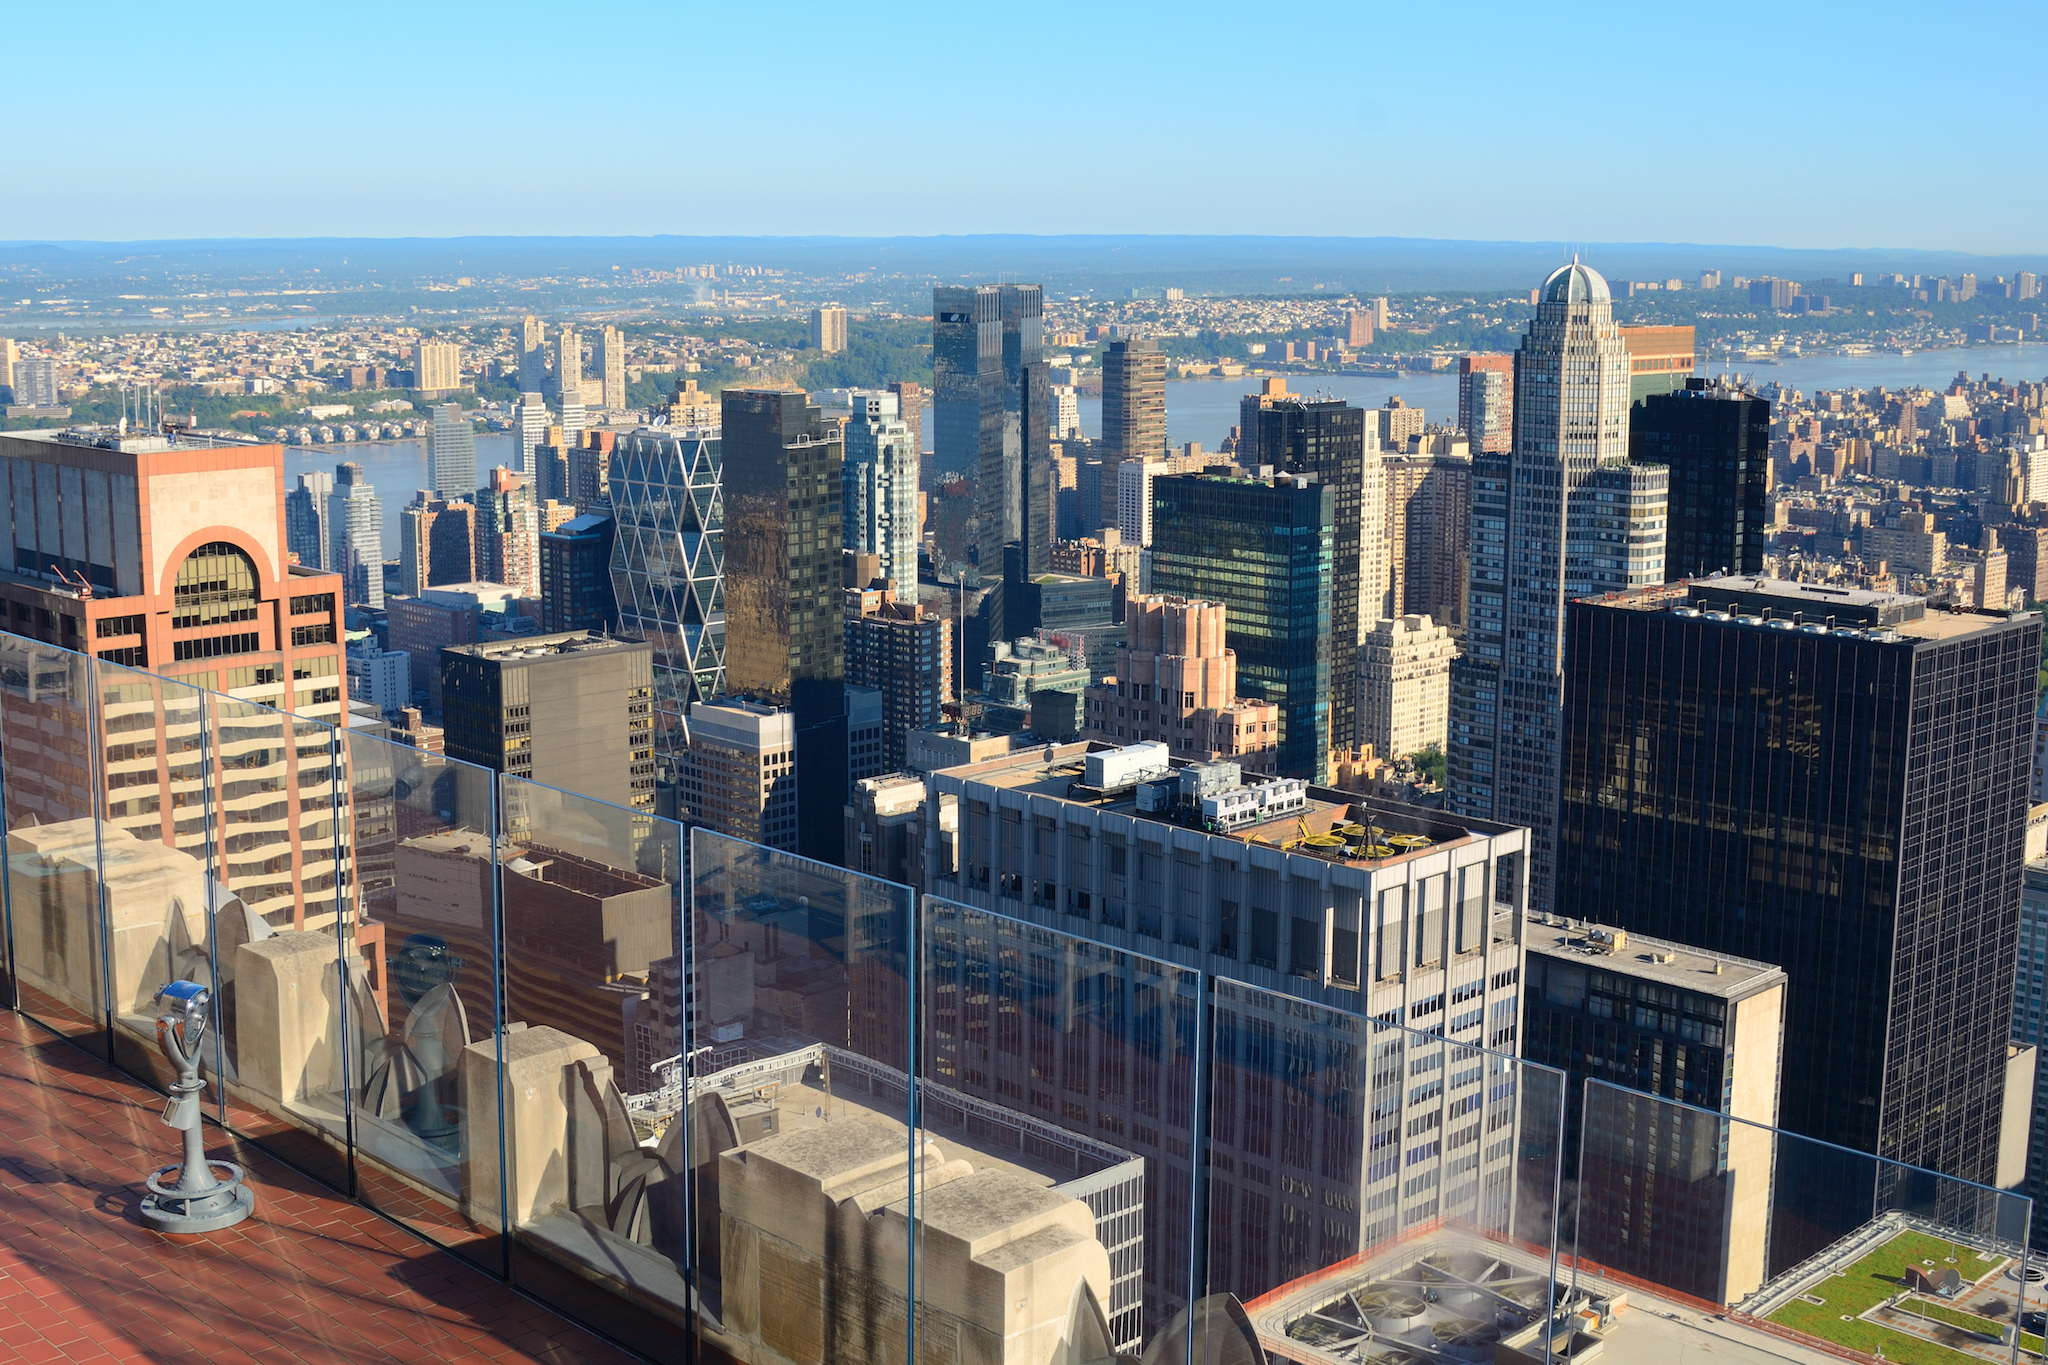 Top of the Rock - Observation Deck